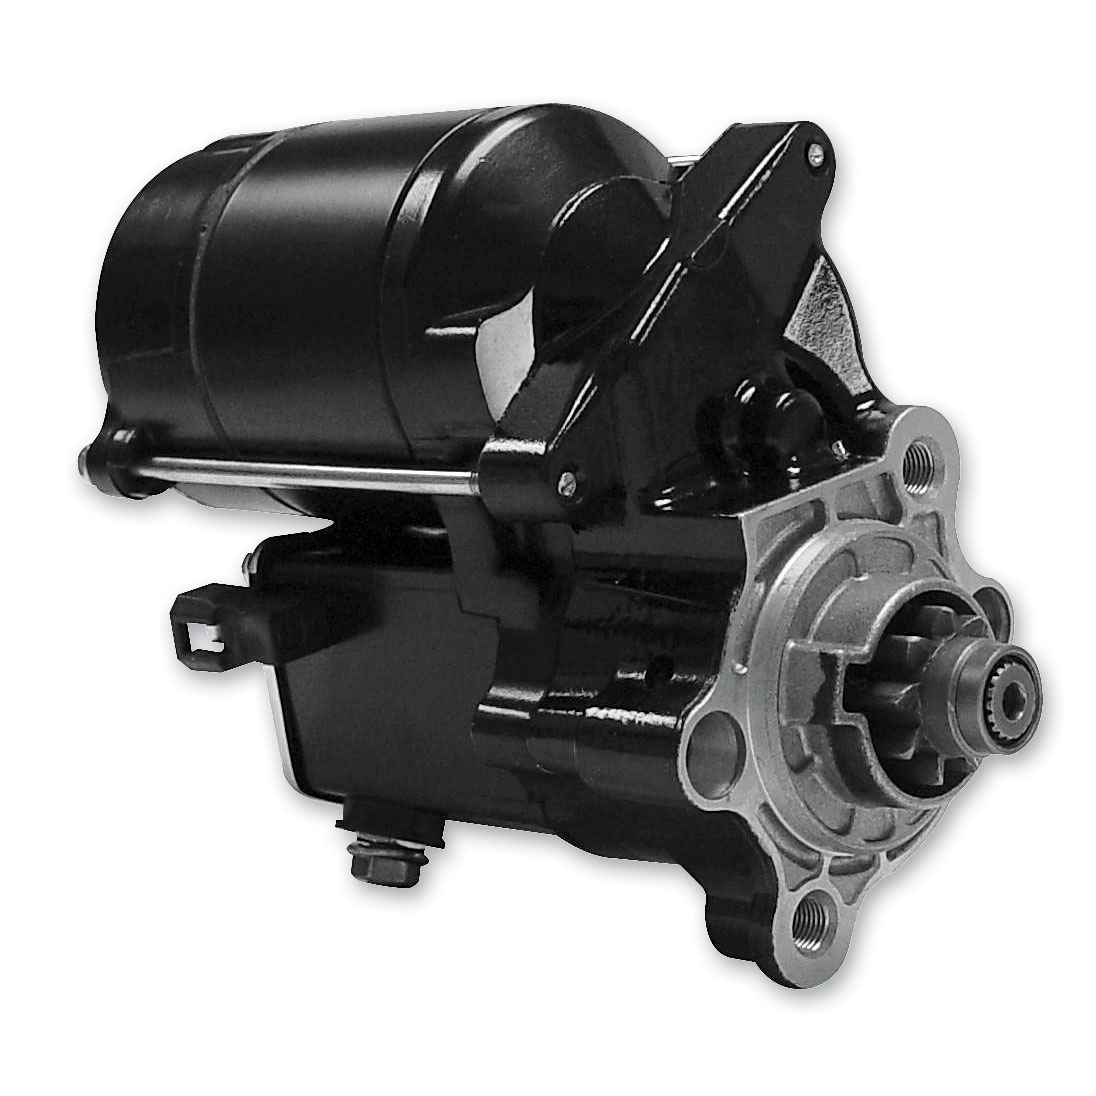 Twin Power 1.4 kW Starter Black